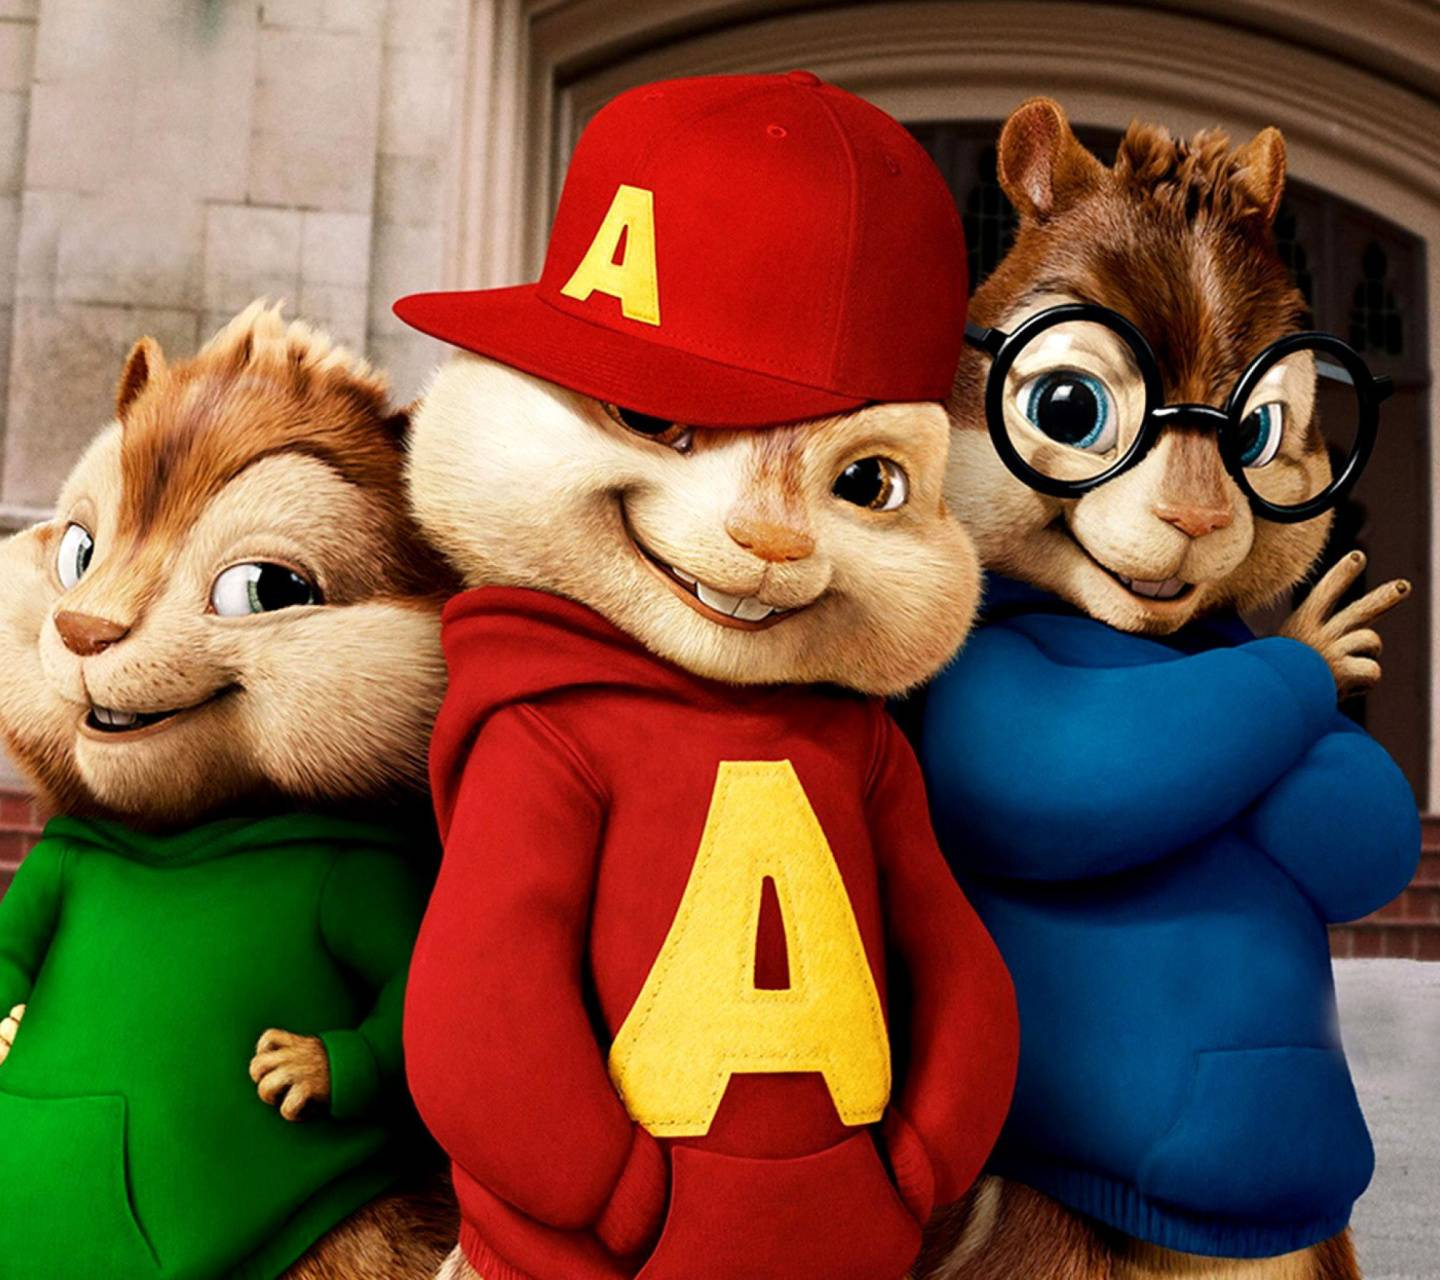 Alvin And Chipmunks Wallpaper By M Phenomenal D3 Free On Zedge